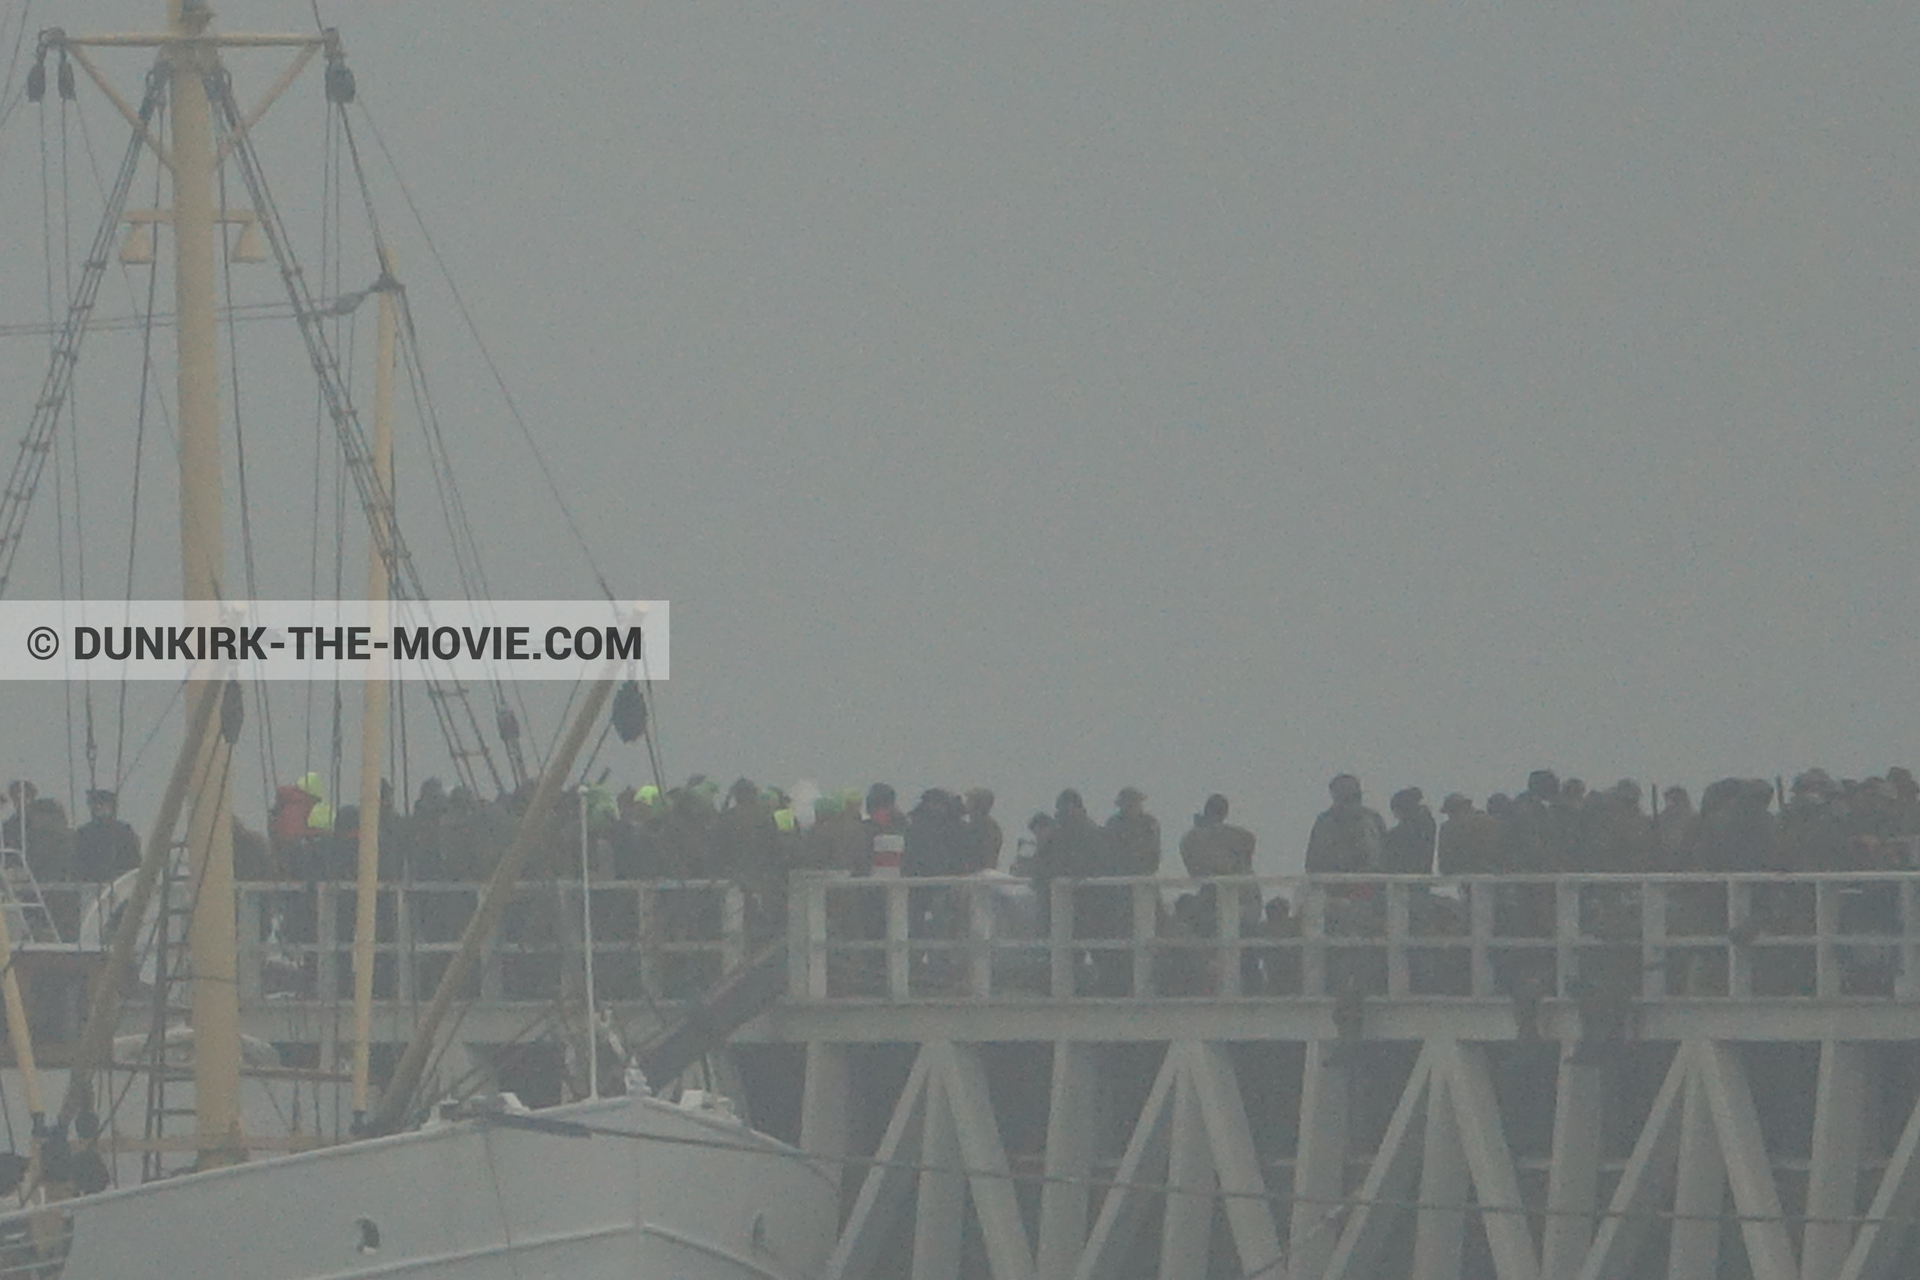 Picture with grey sky, supernumeraries, EST pier, M/S Rogaland,  from behind the scene of the Dunkirk movie by Nolan